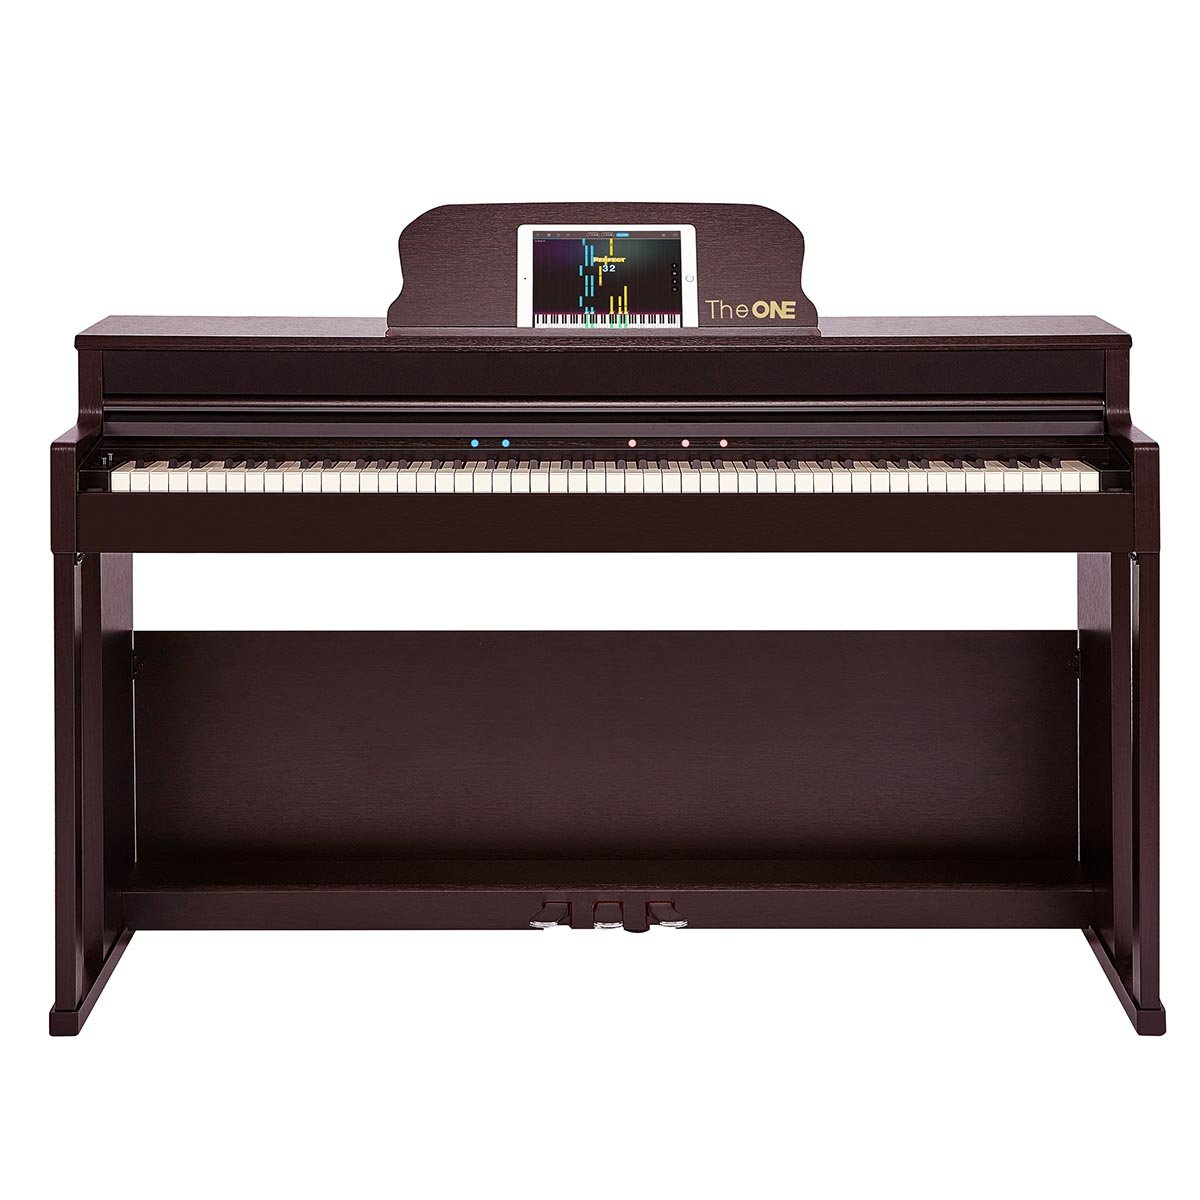 Smart Piano Top2  (piano bench is included) - Brown